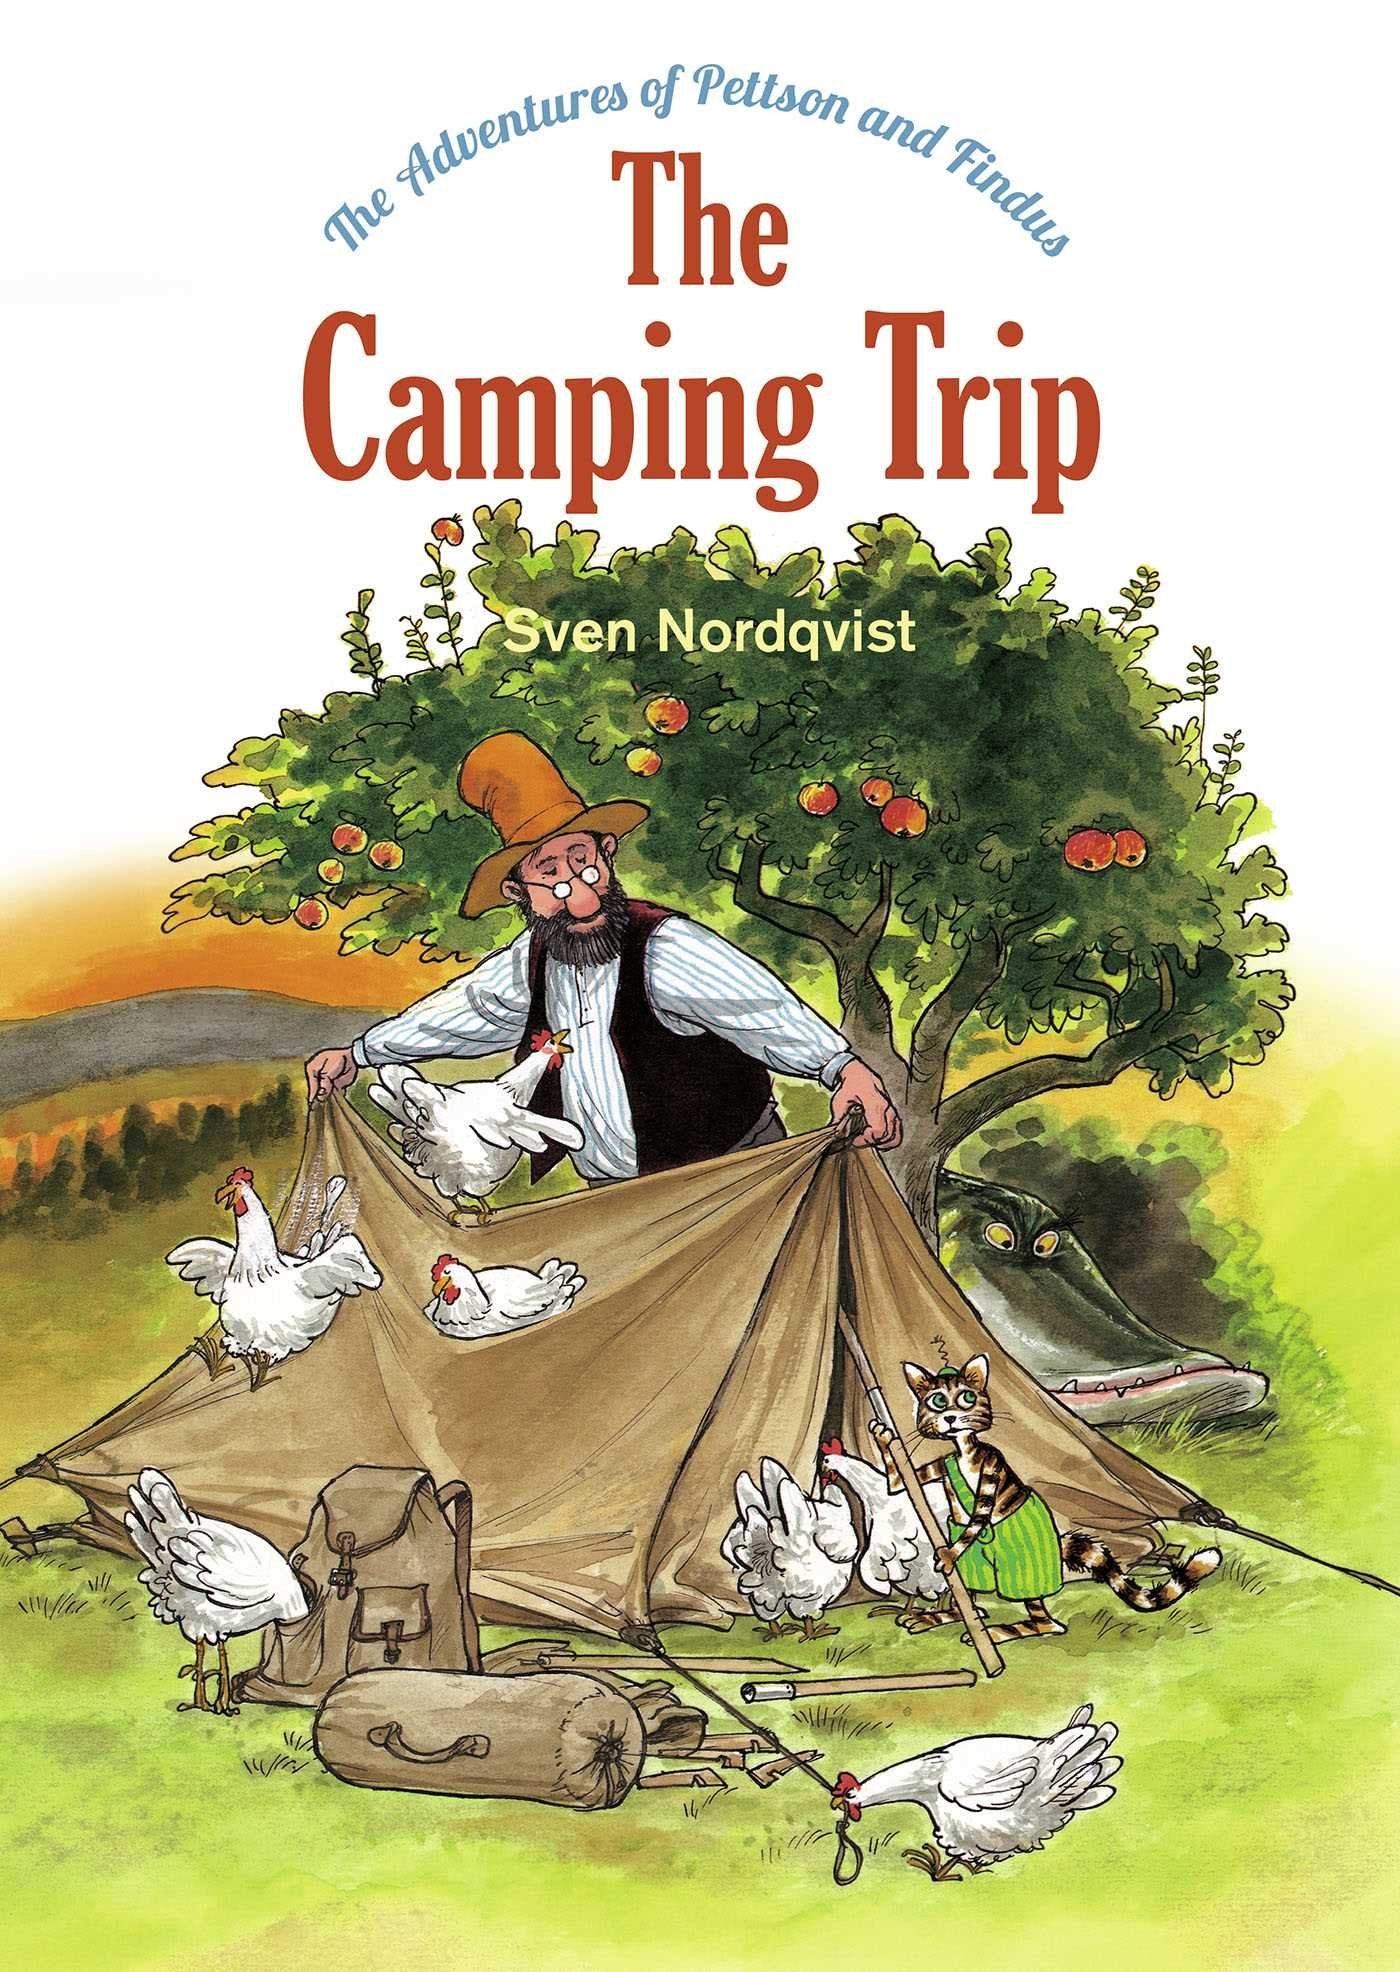 Download The Camping Trip: The Adventures of Pettson & Findus (The Adventures of Pettson and Findus) PDF